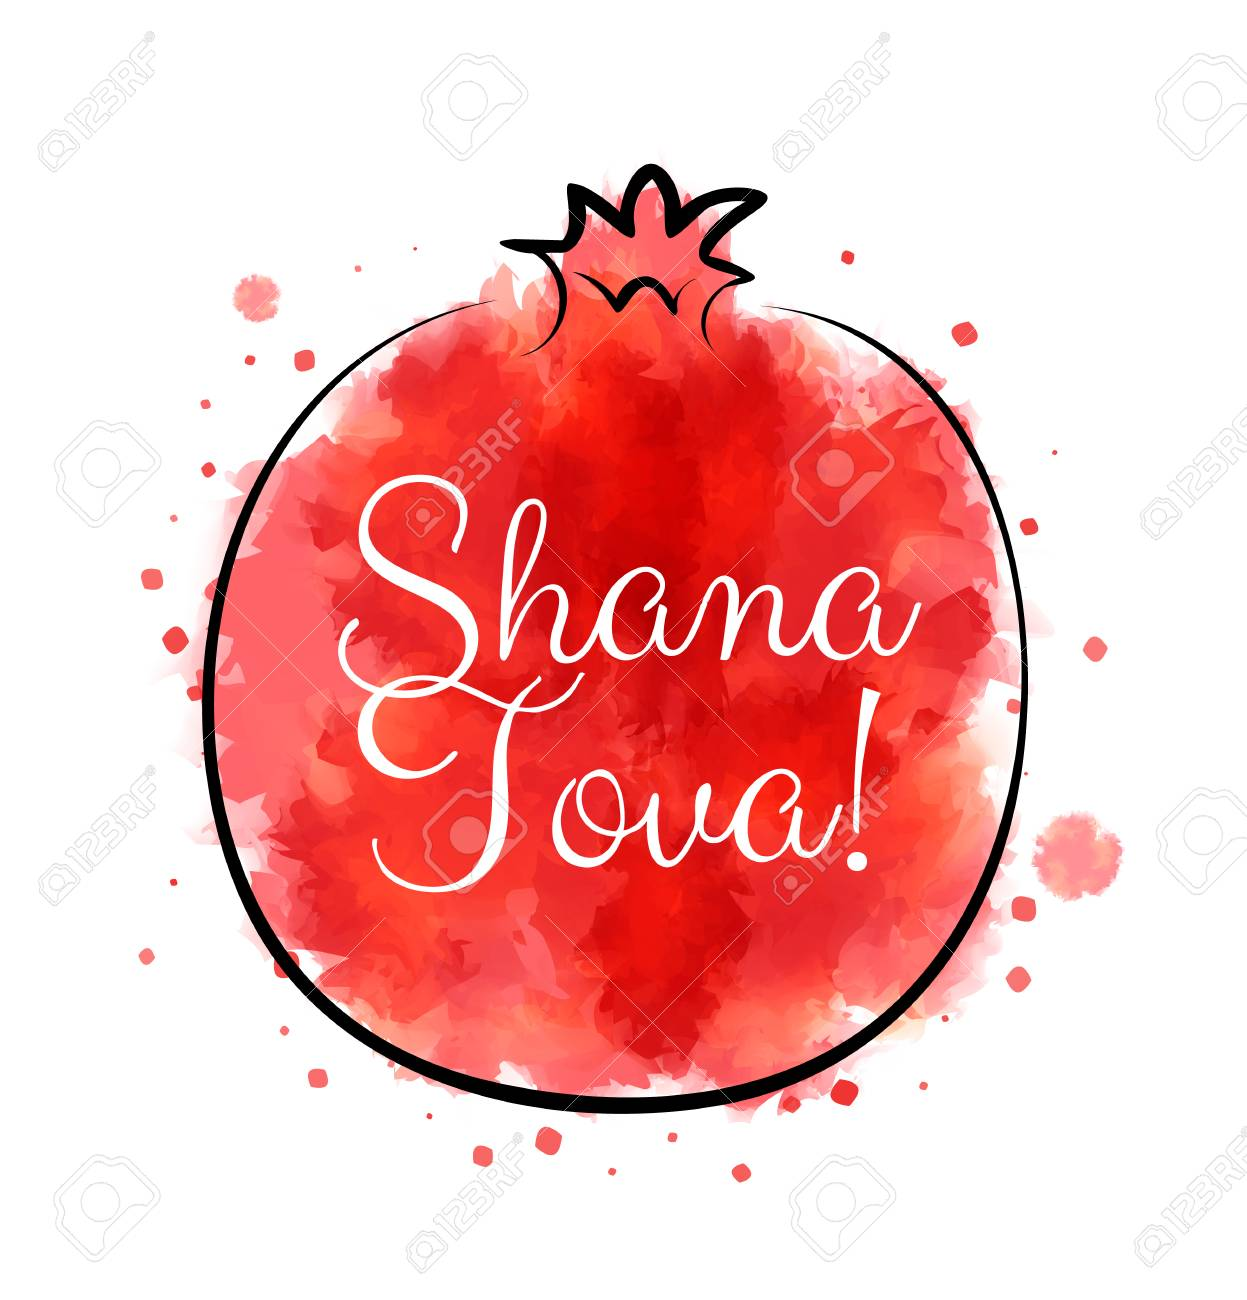 Red Watercolor Pomegranate With Greetings For Jewish Holiday Rosh